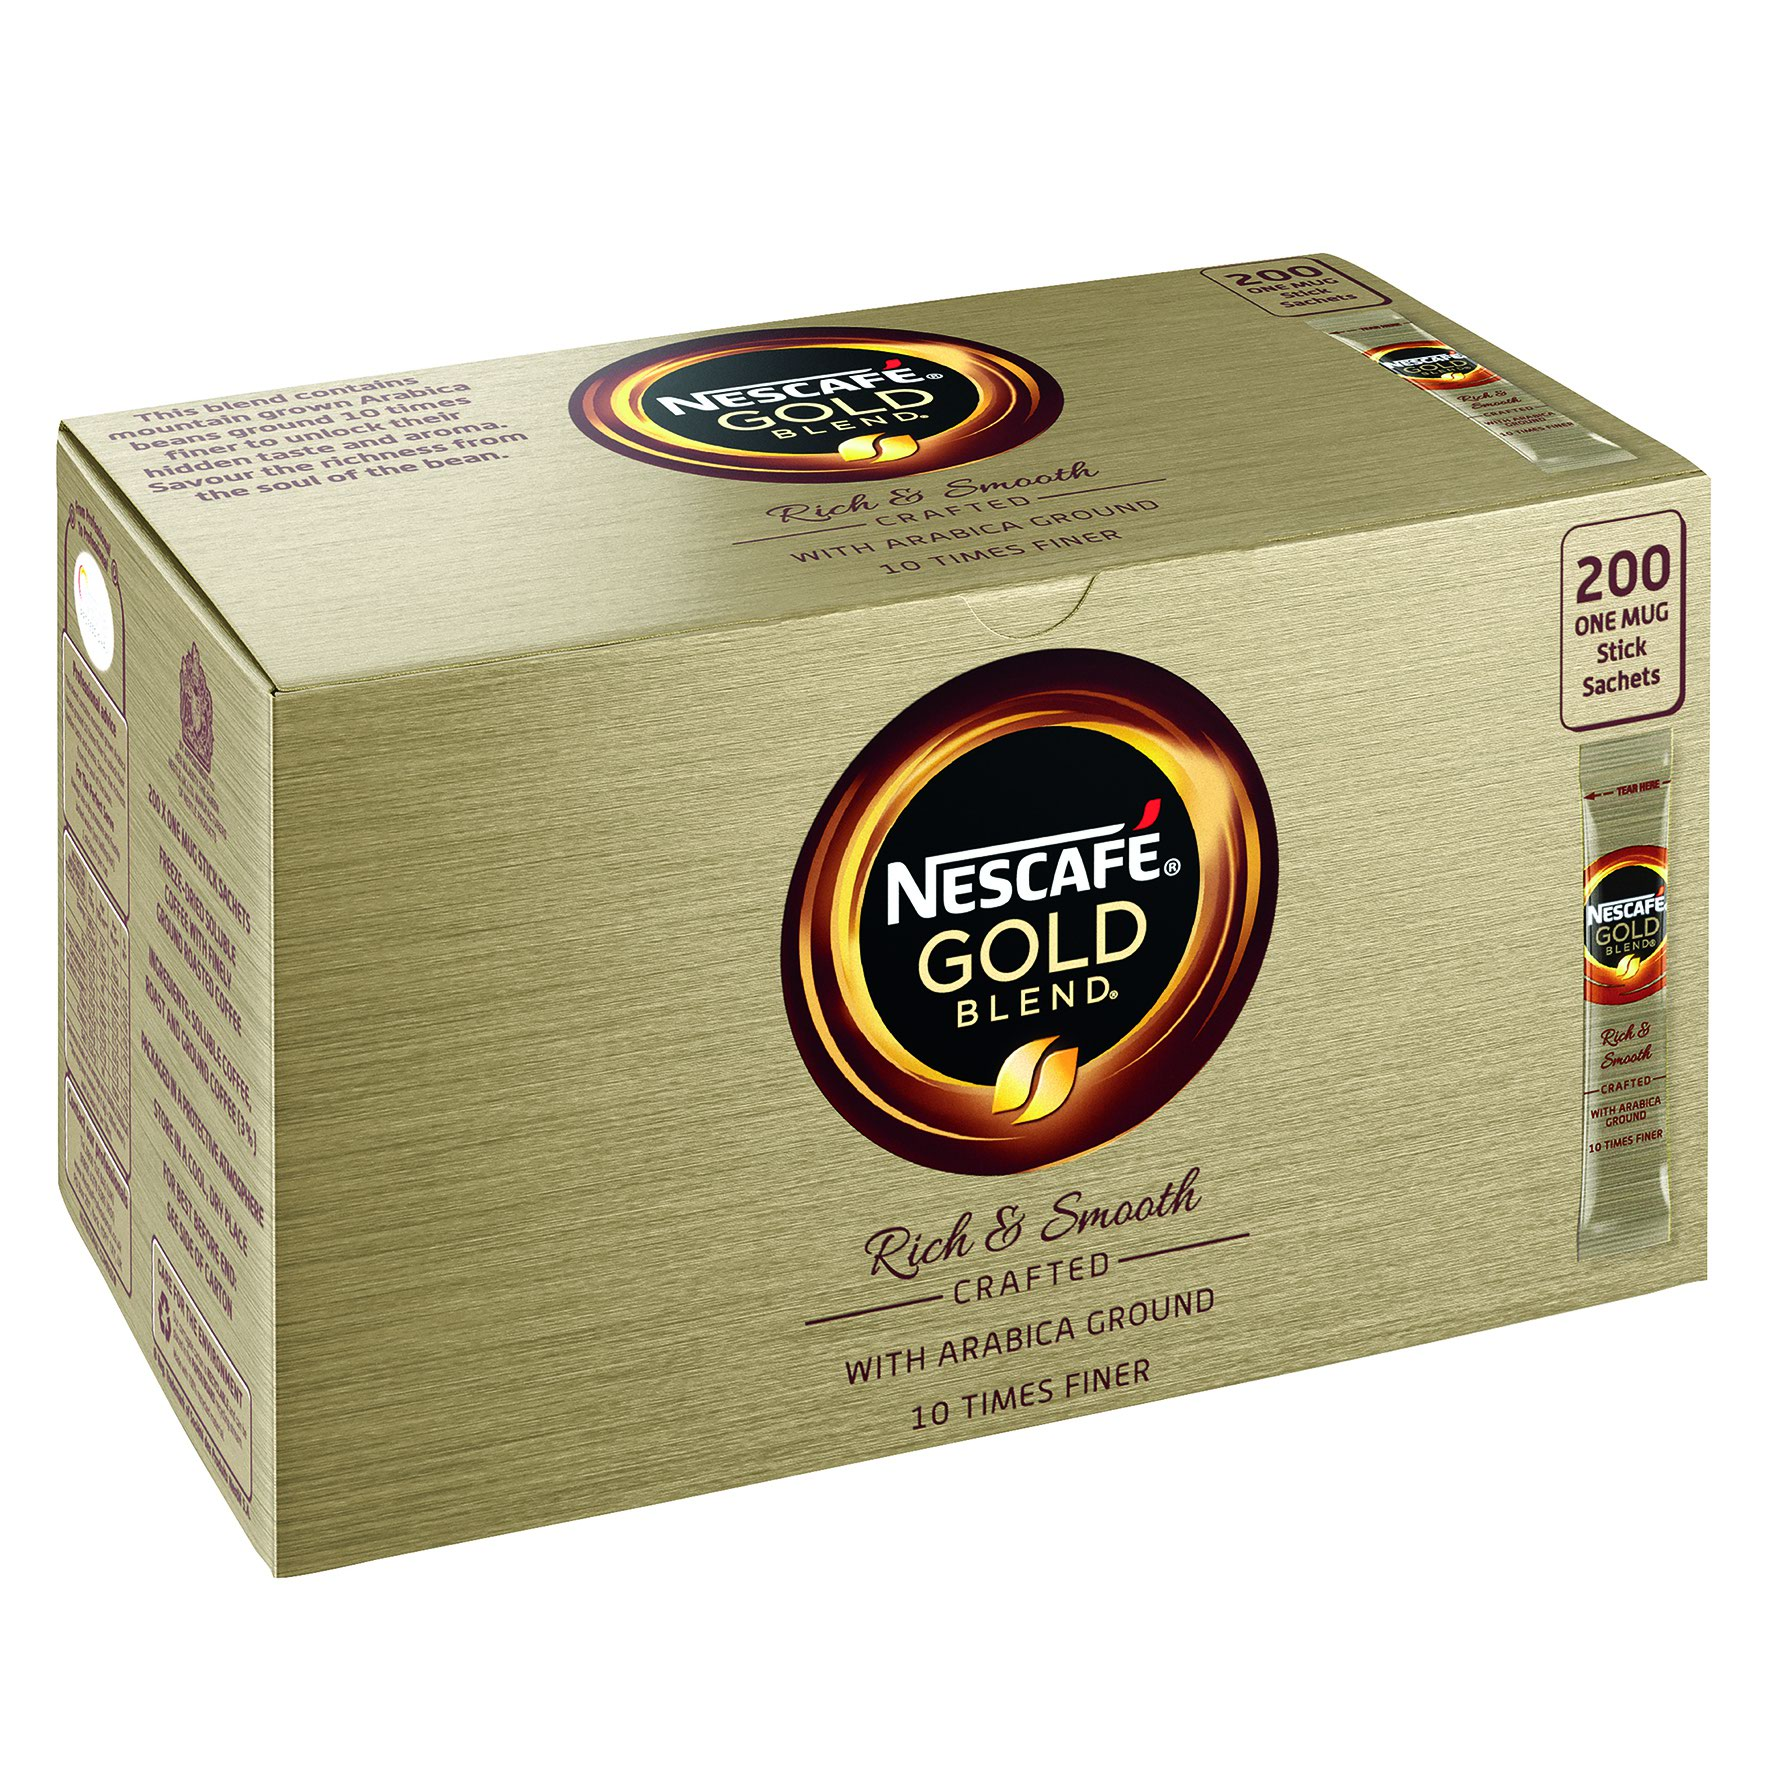 NESCAFE GOLD BLEND Coffee Sticks (200)